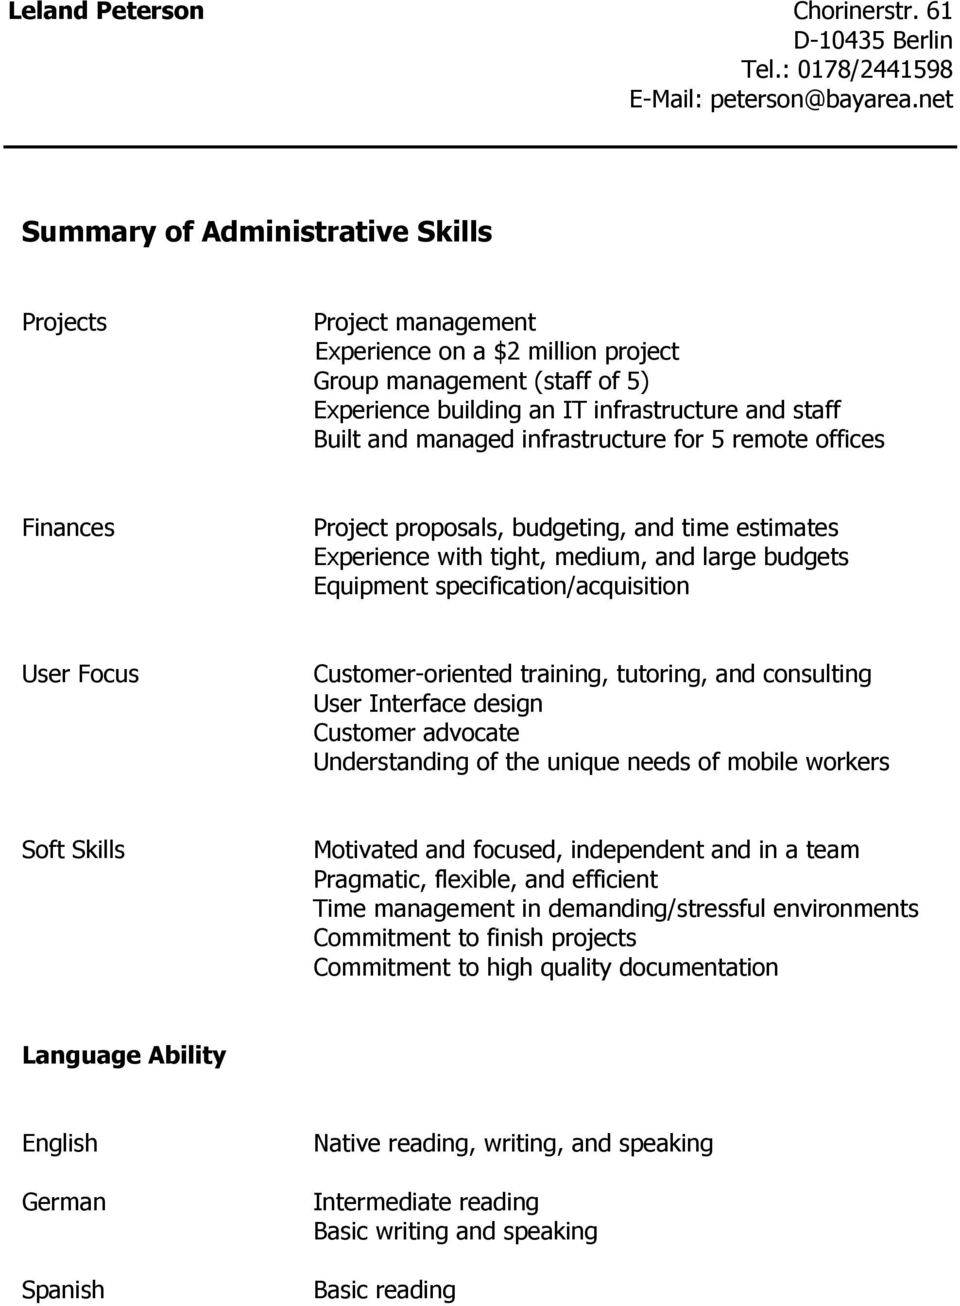 Customer-oriented training, tutoring, and consulting User Interface design Customer advocate Understanding of the unique needs of mobile workers Soft Skills Motivated and focused, independent and in